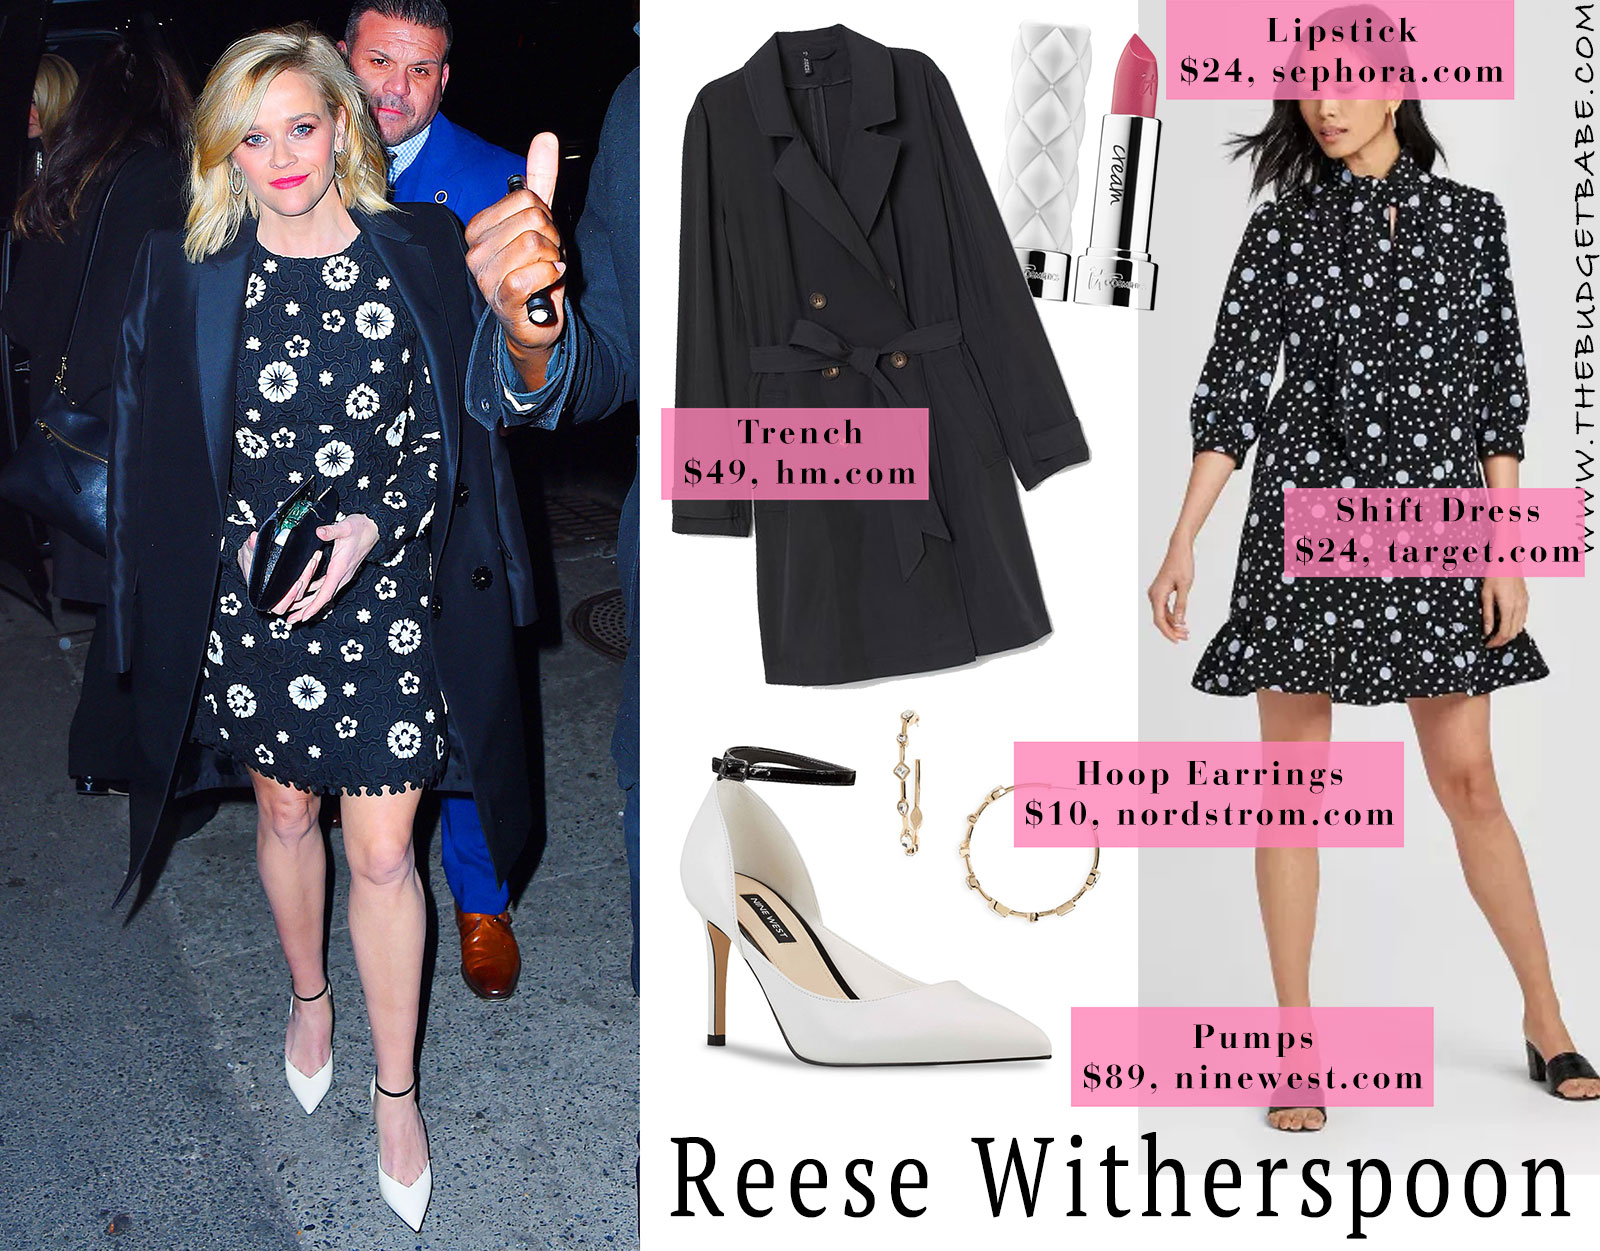 Reese Witherspoon's Navy and White Lace Dress Look for Less